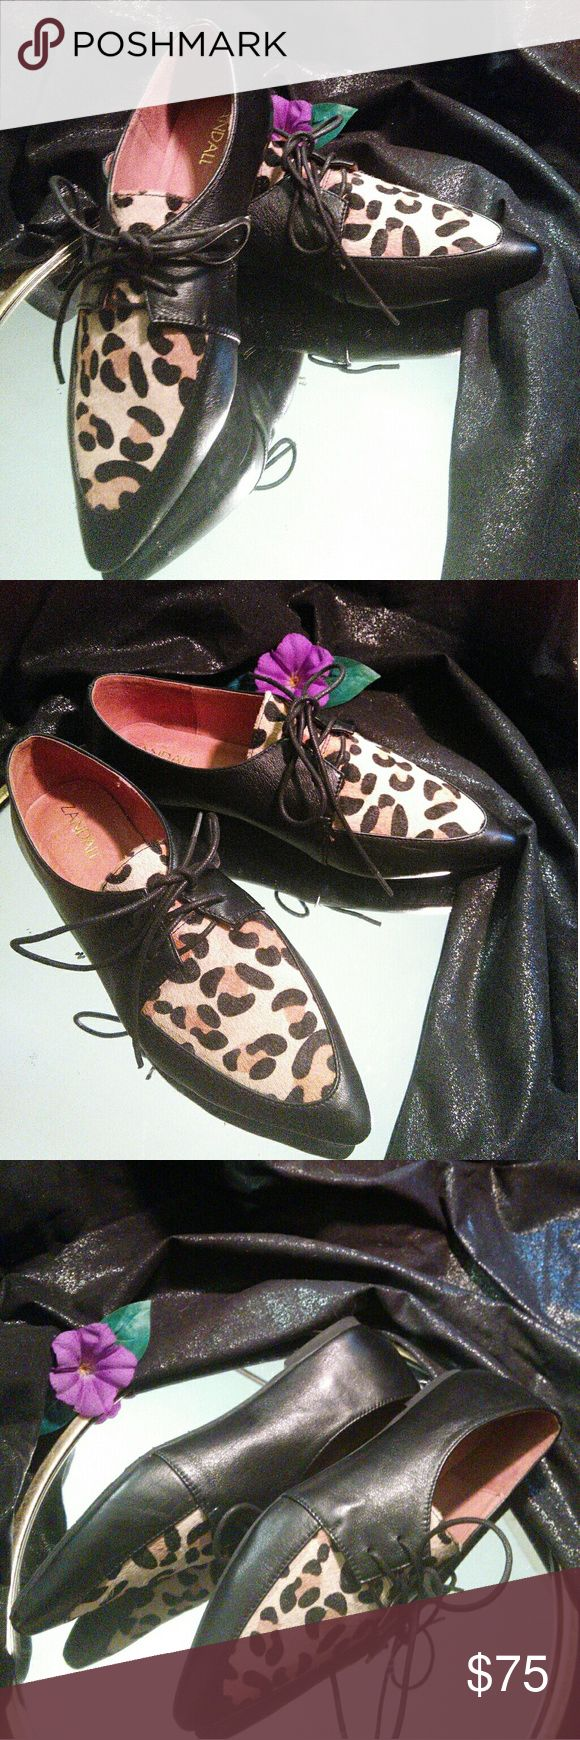 $$DROP$$ ZANDALL leather oxfords. New. Ultra chic! Zandall leather oxfords. Brand new. Size 9/40. Pointed toe. Super soft leather with textured (fur) leopard print detail. These are beautiful, comfortable and very well made. I so wish I could keep them, but they are not my size! :( Zandall Shoes Flats & Loafers